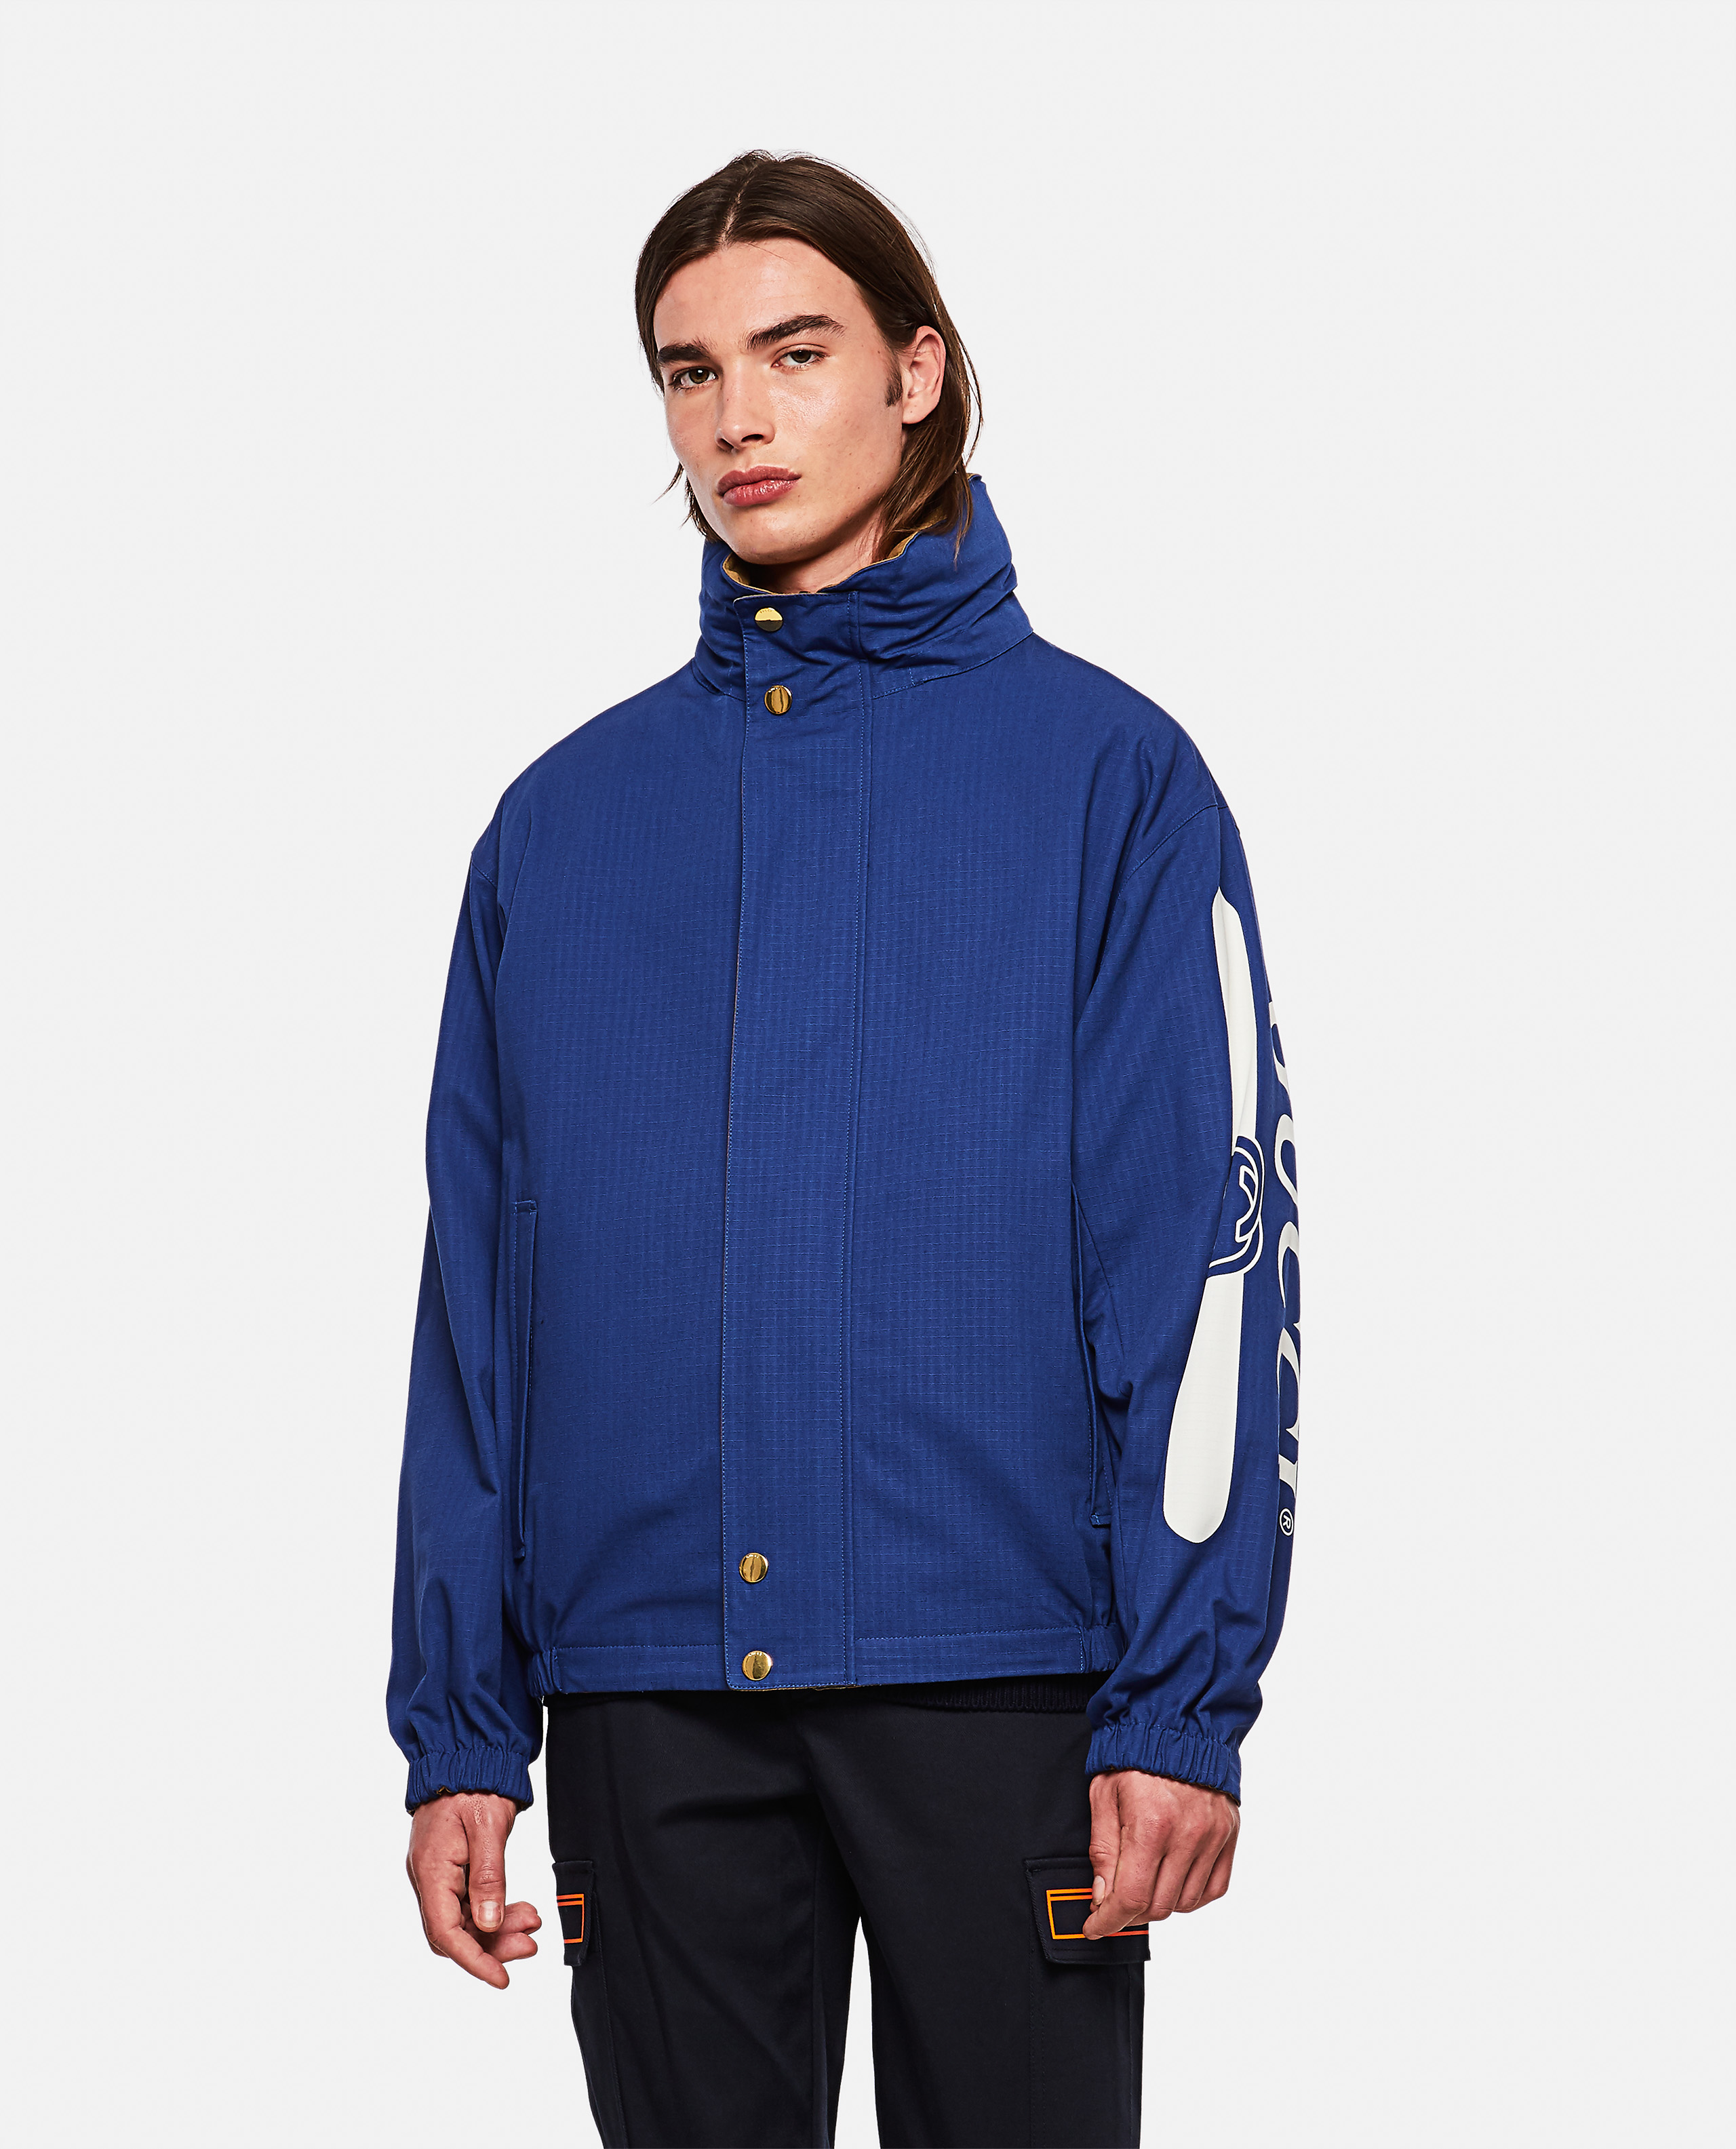 Reversible jacket with Gucci logo